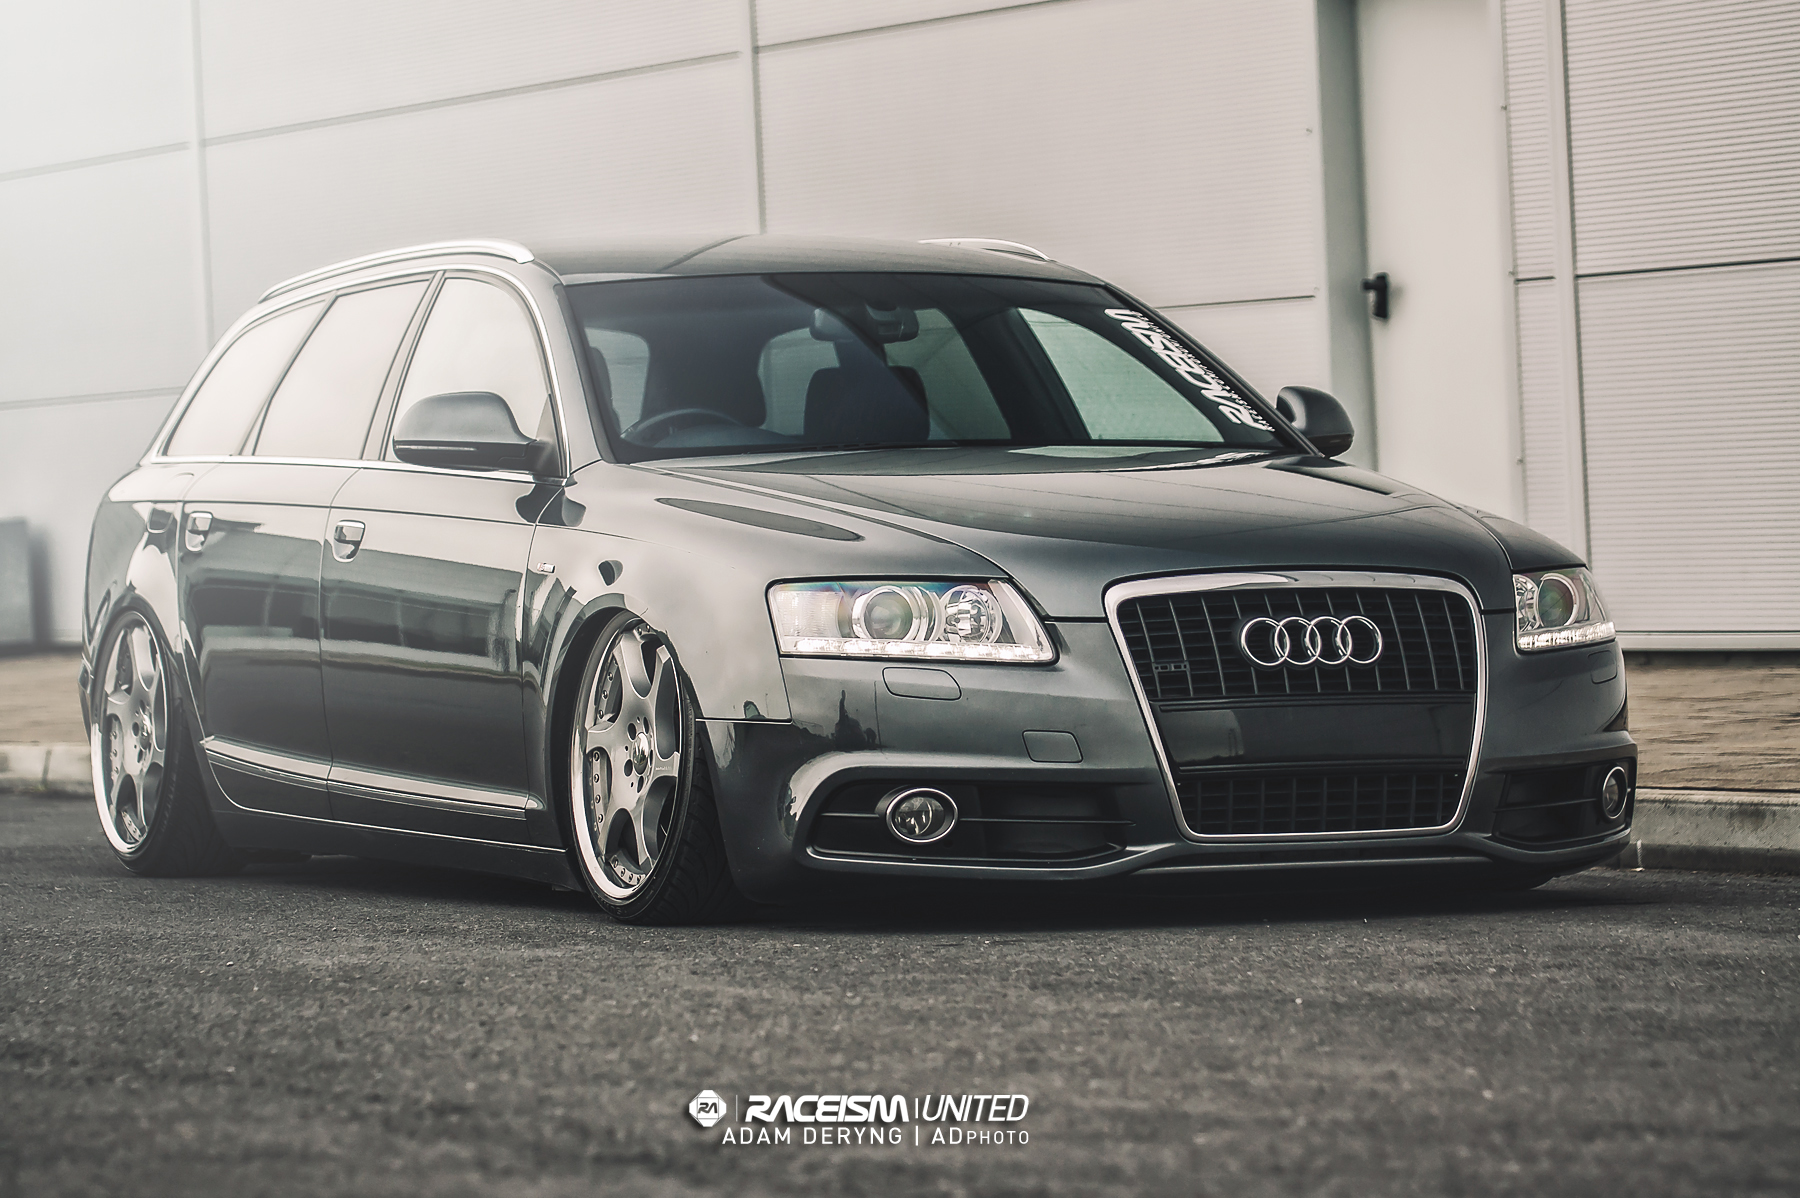 Pictures of audi a6 avant (4f,c6) 2013